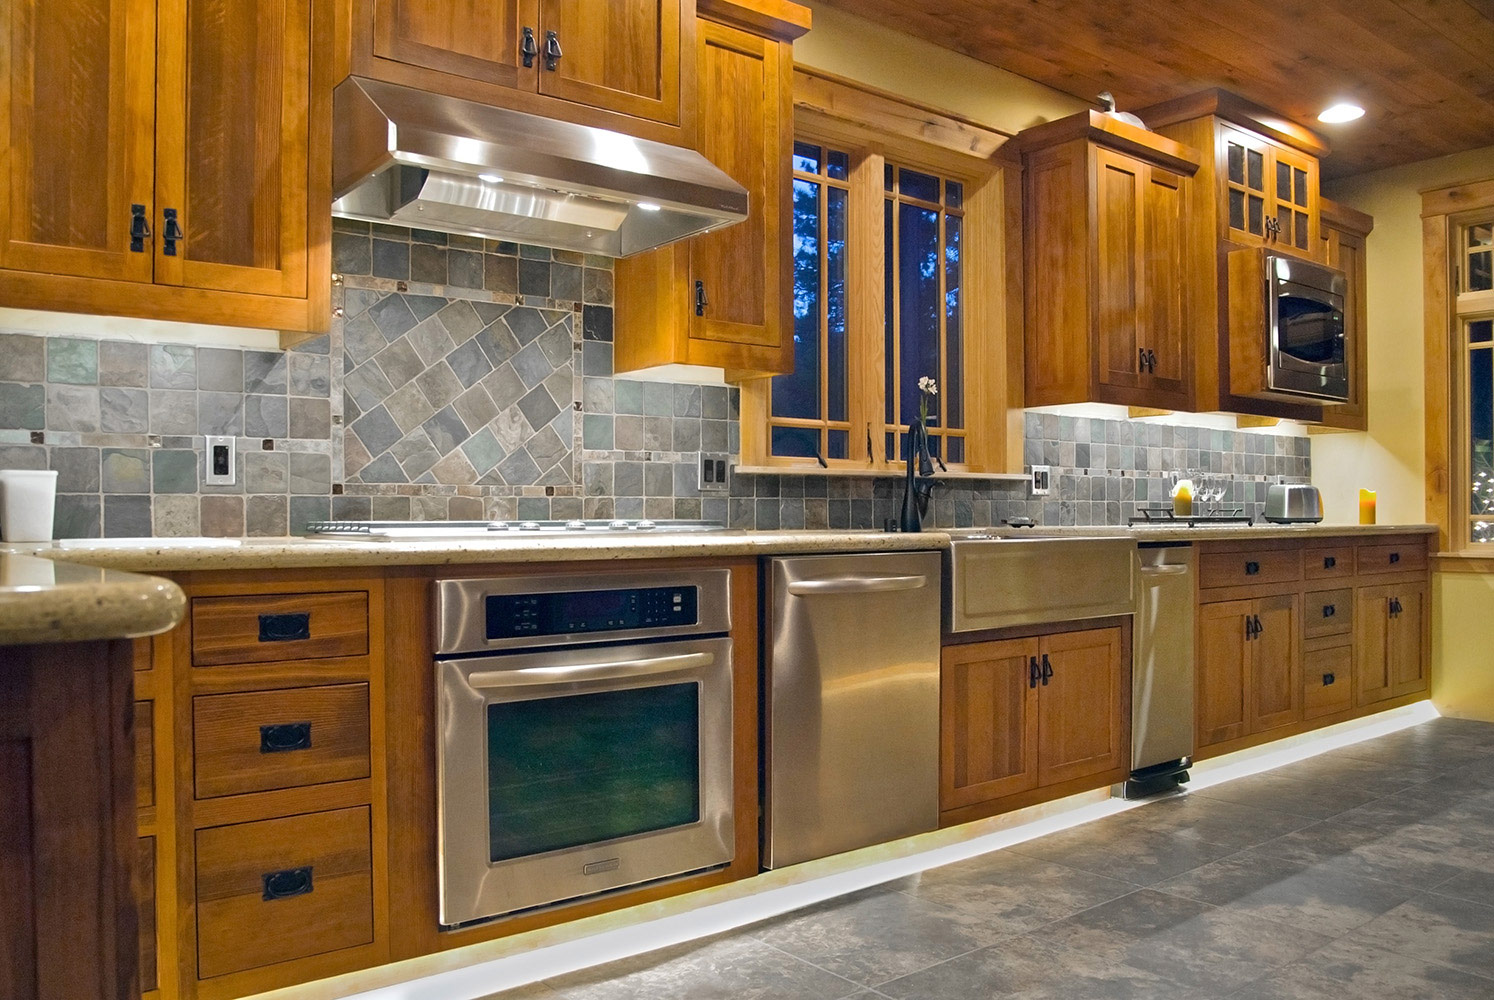 Kitchen Cabinets Under Lighting Toe Kick And Under Cabinet Lighting Diode Led